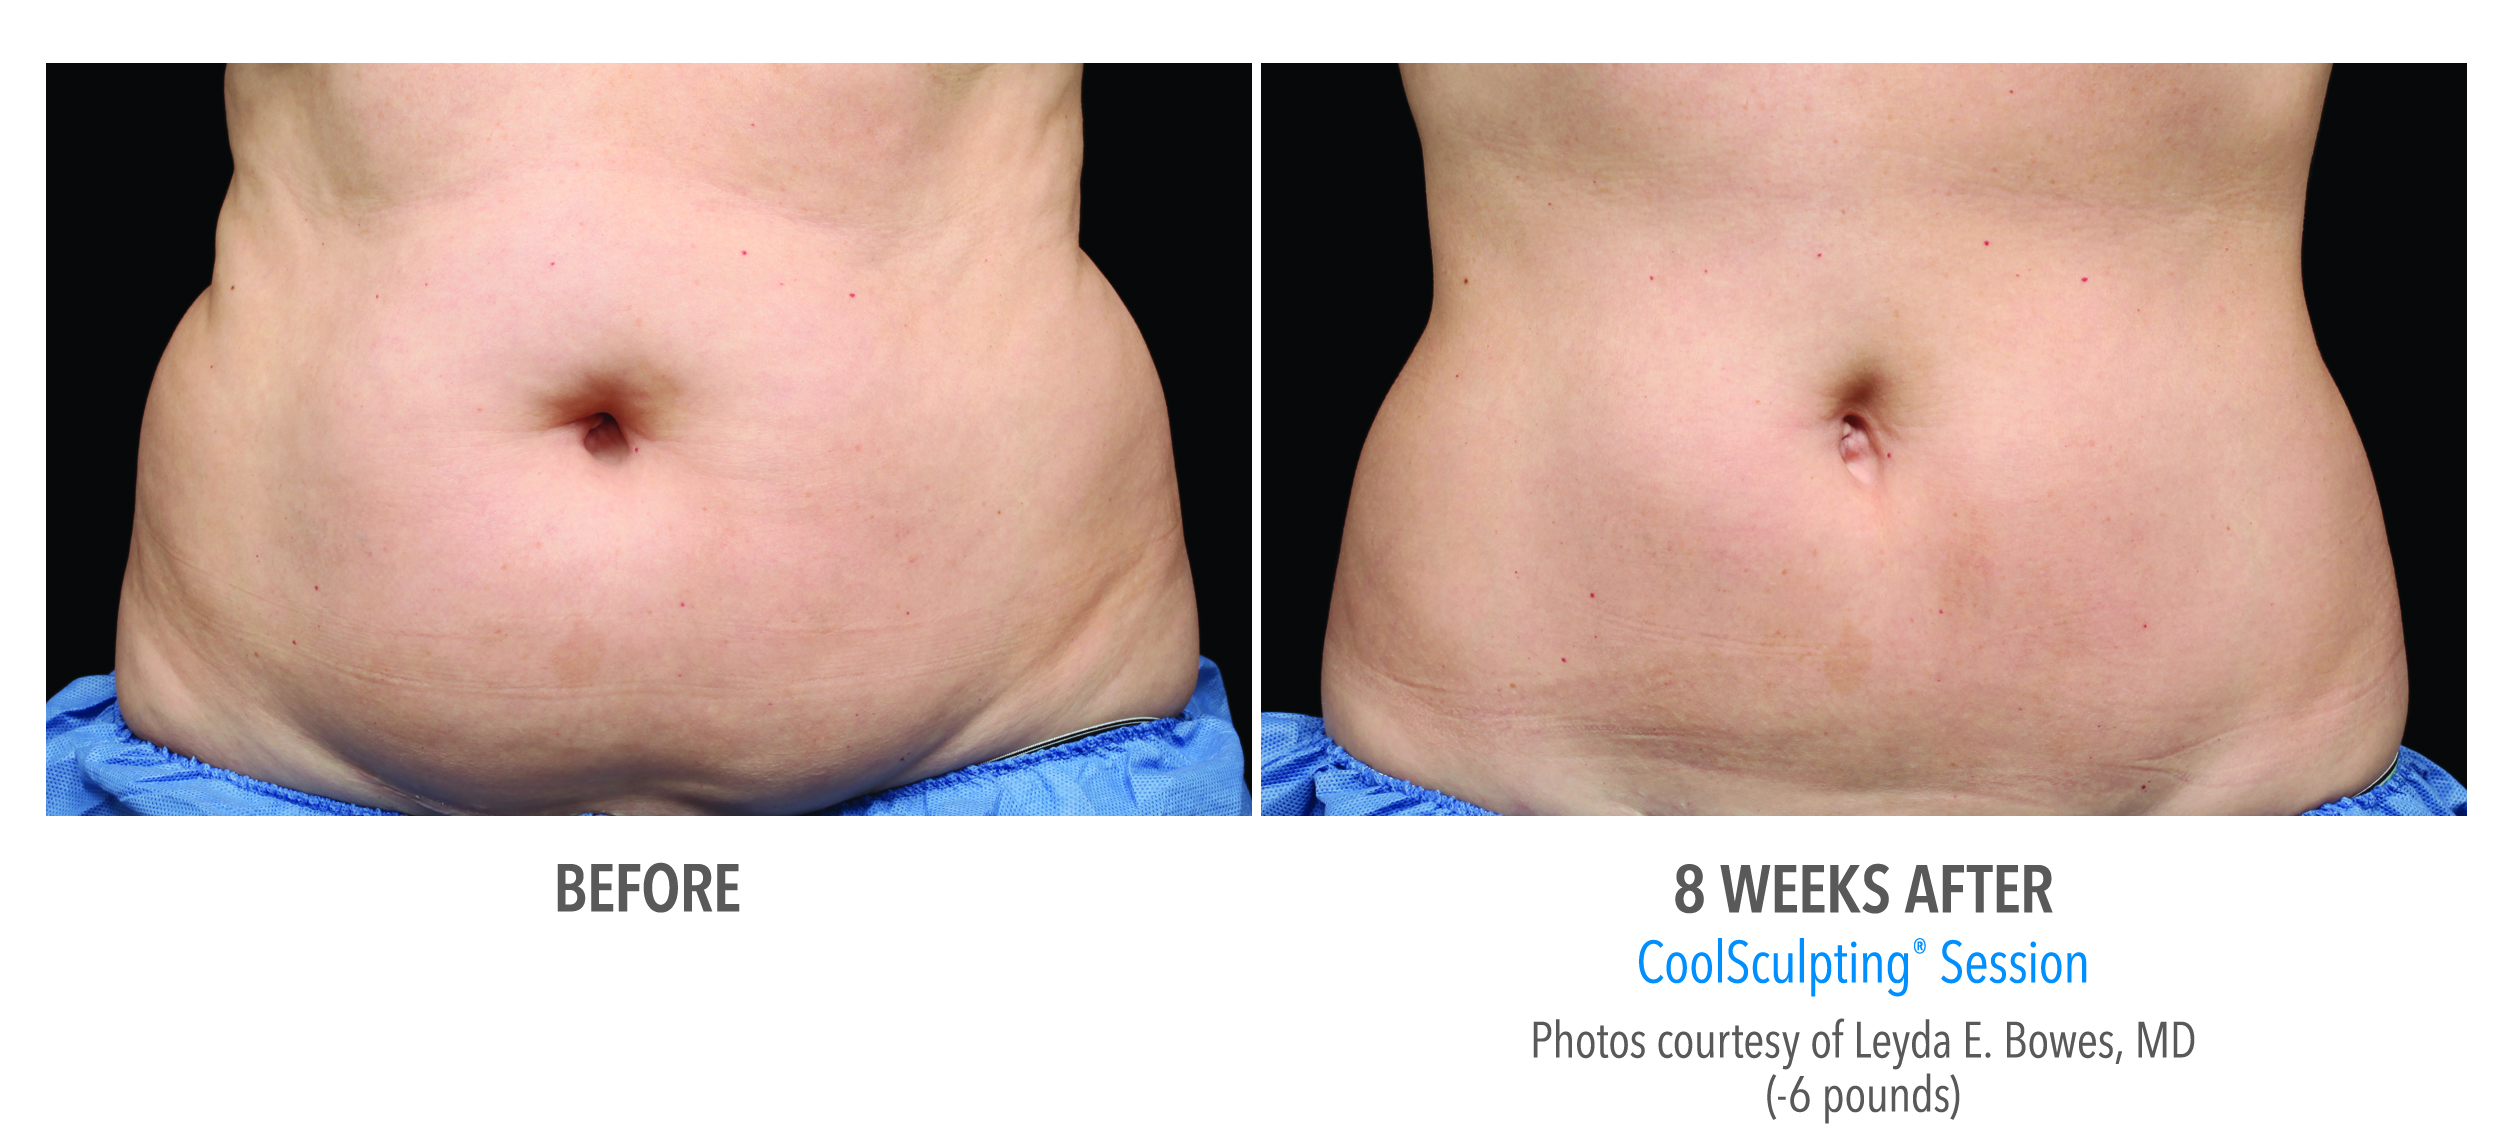 Muffin Top Before and After